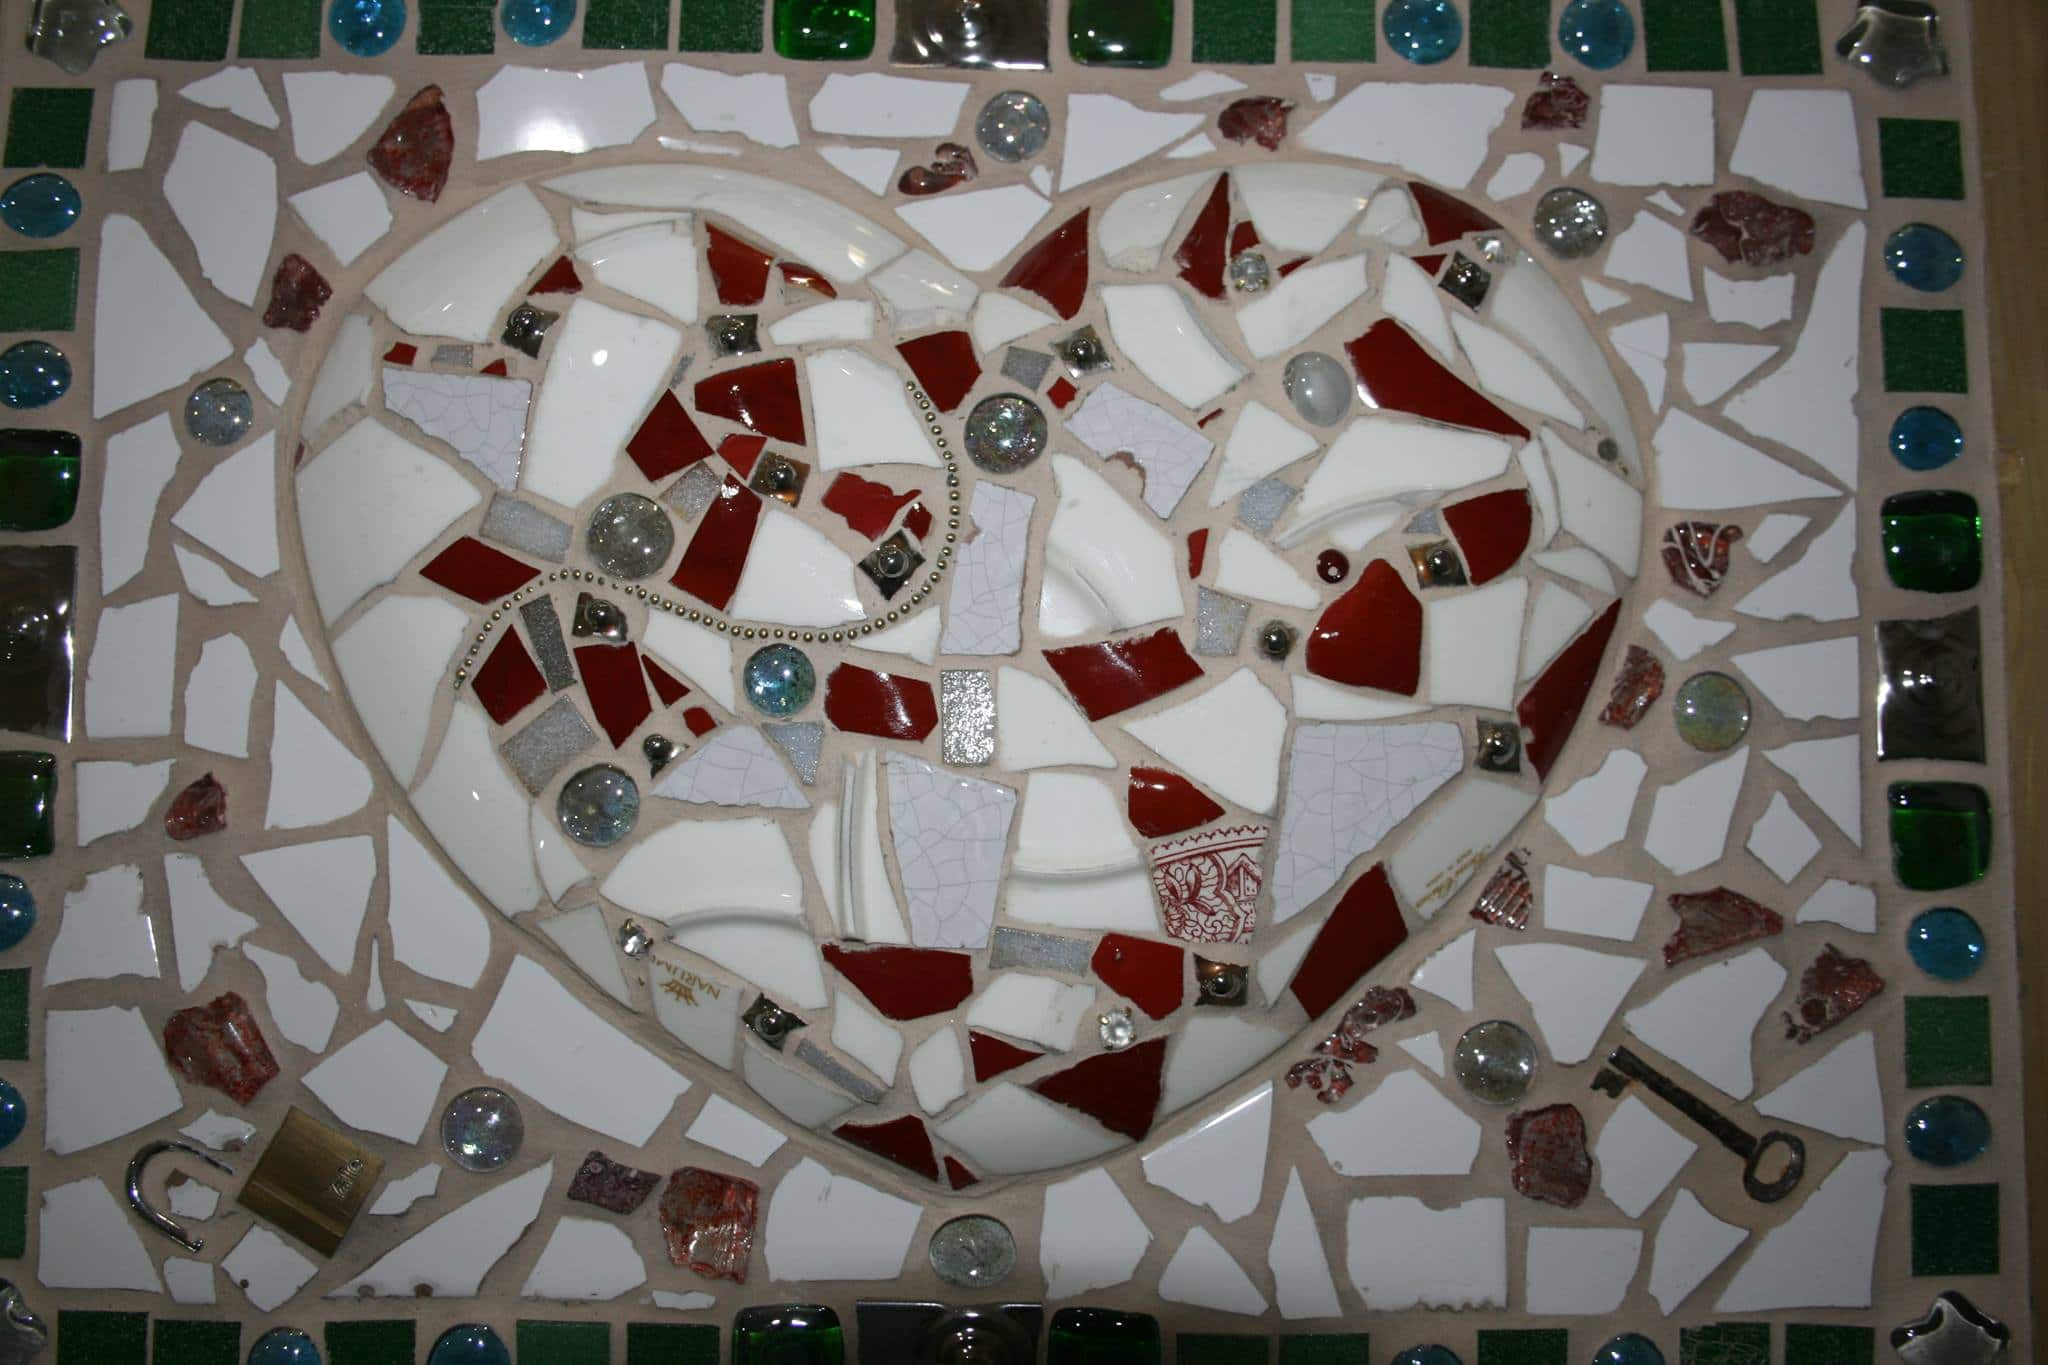 David Nicholls Sculpture and Mosaics